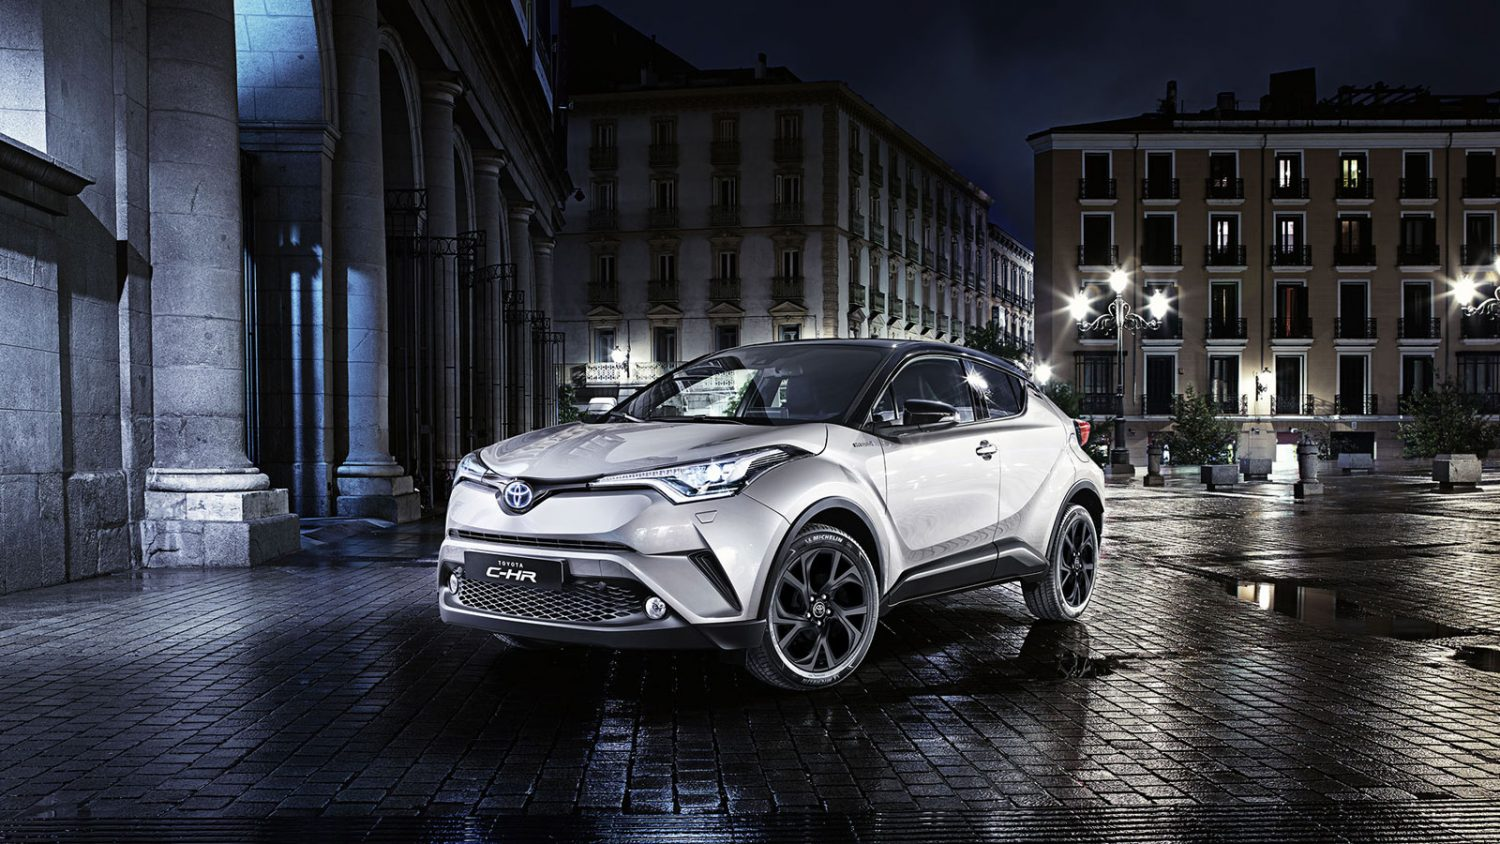 c-hr-firstedition-focus1_tcm-2015-760399